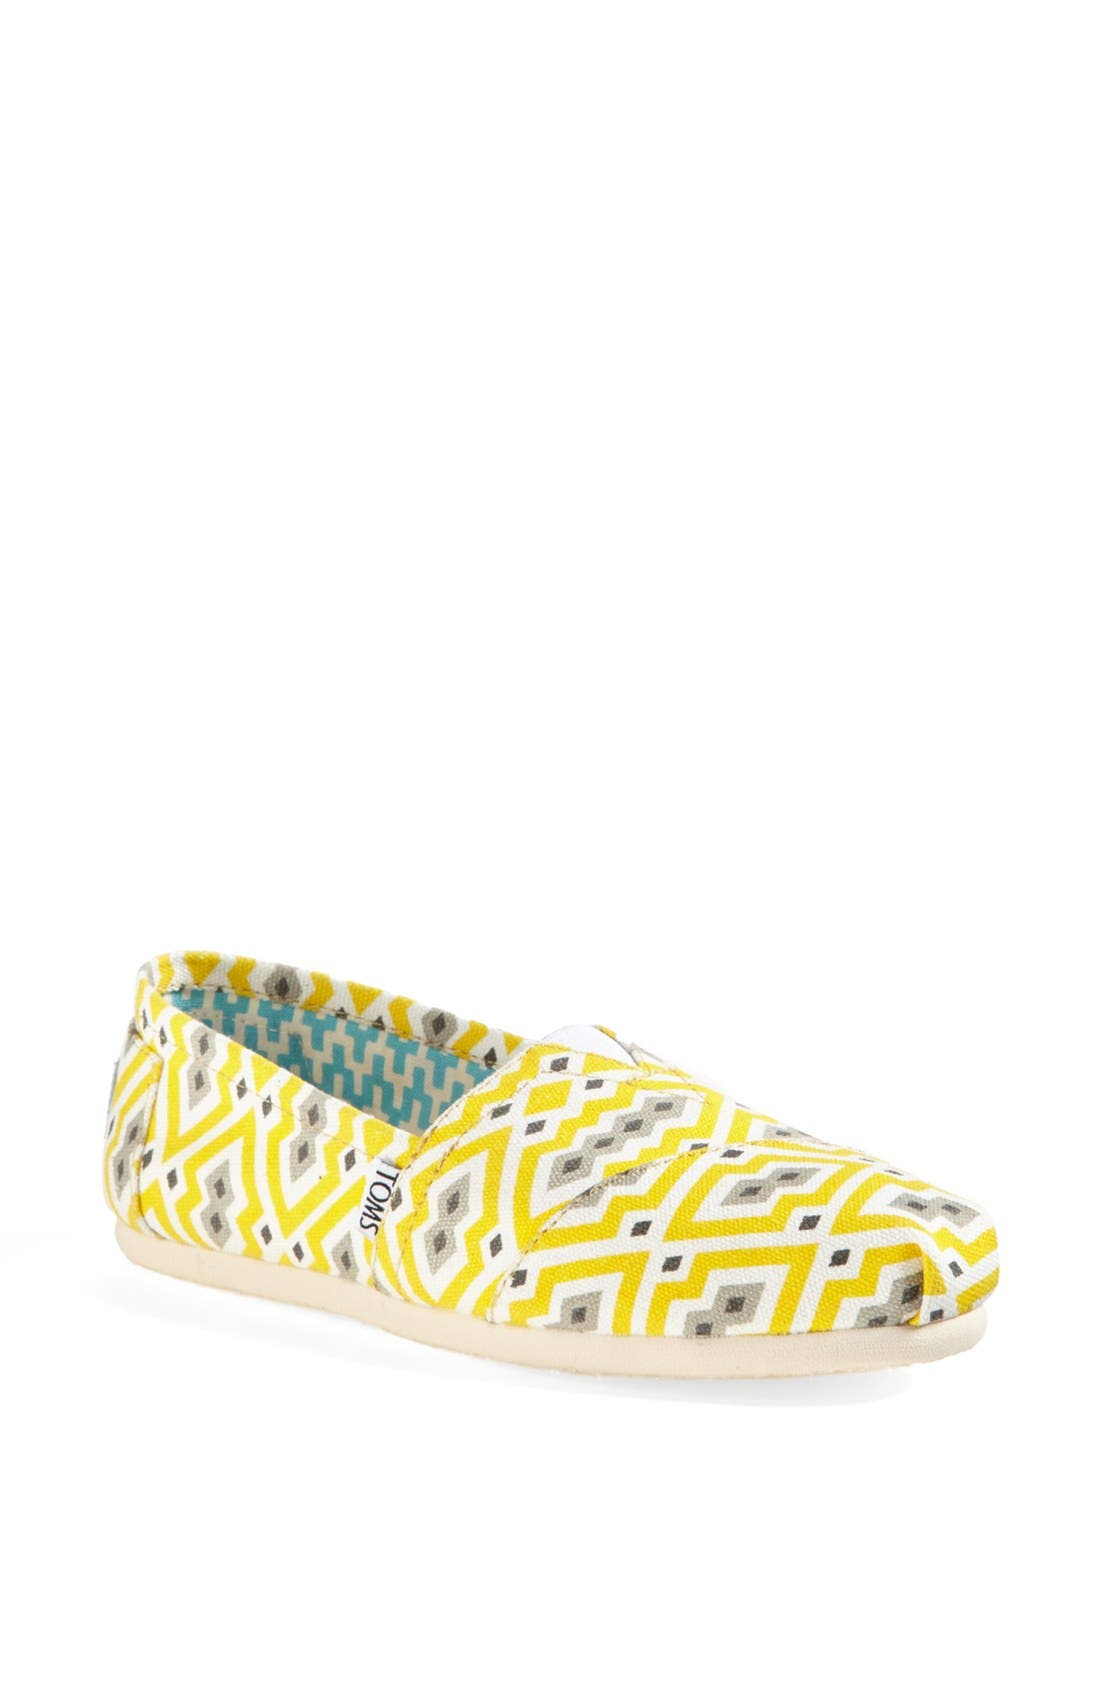 Alternate Image 1 Selected - TOMS 'Classic - Jonathan Adler' Slip-On (Women)